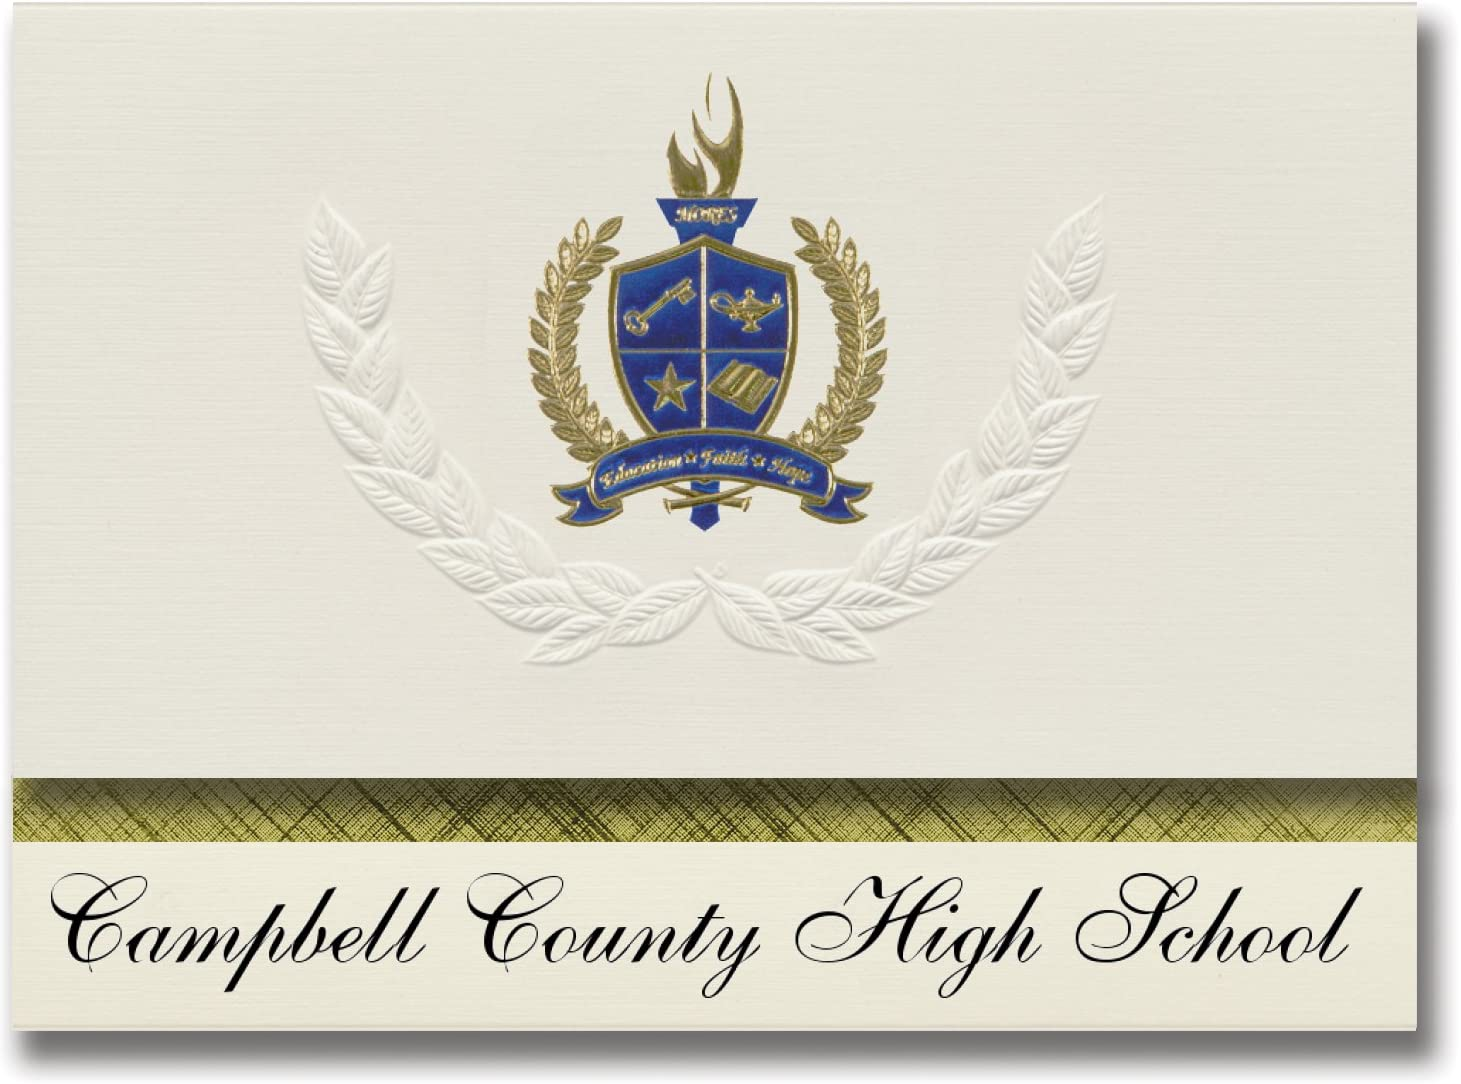 Signature Announcements Campbell County High School (Gillette, WY) Graduation Announcements, Presidential style, Basic package of 25 with Gold & Blue Metallic Foil seal